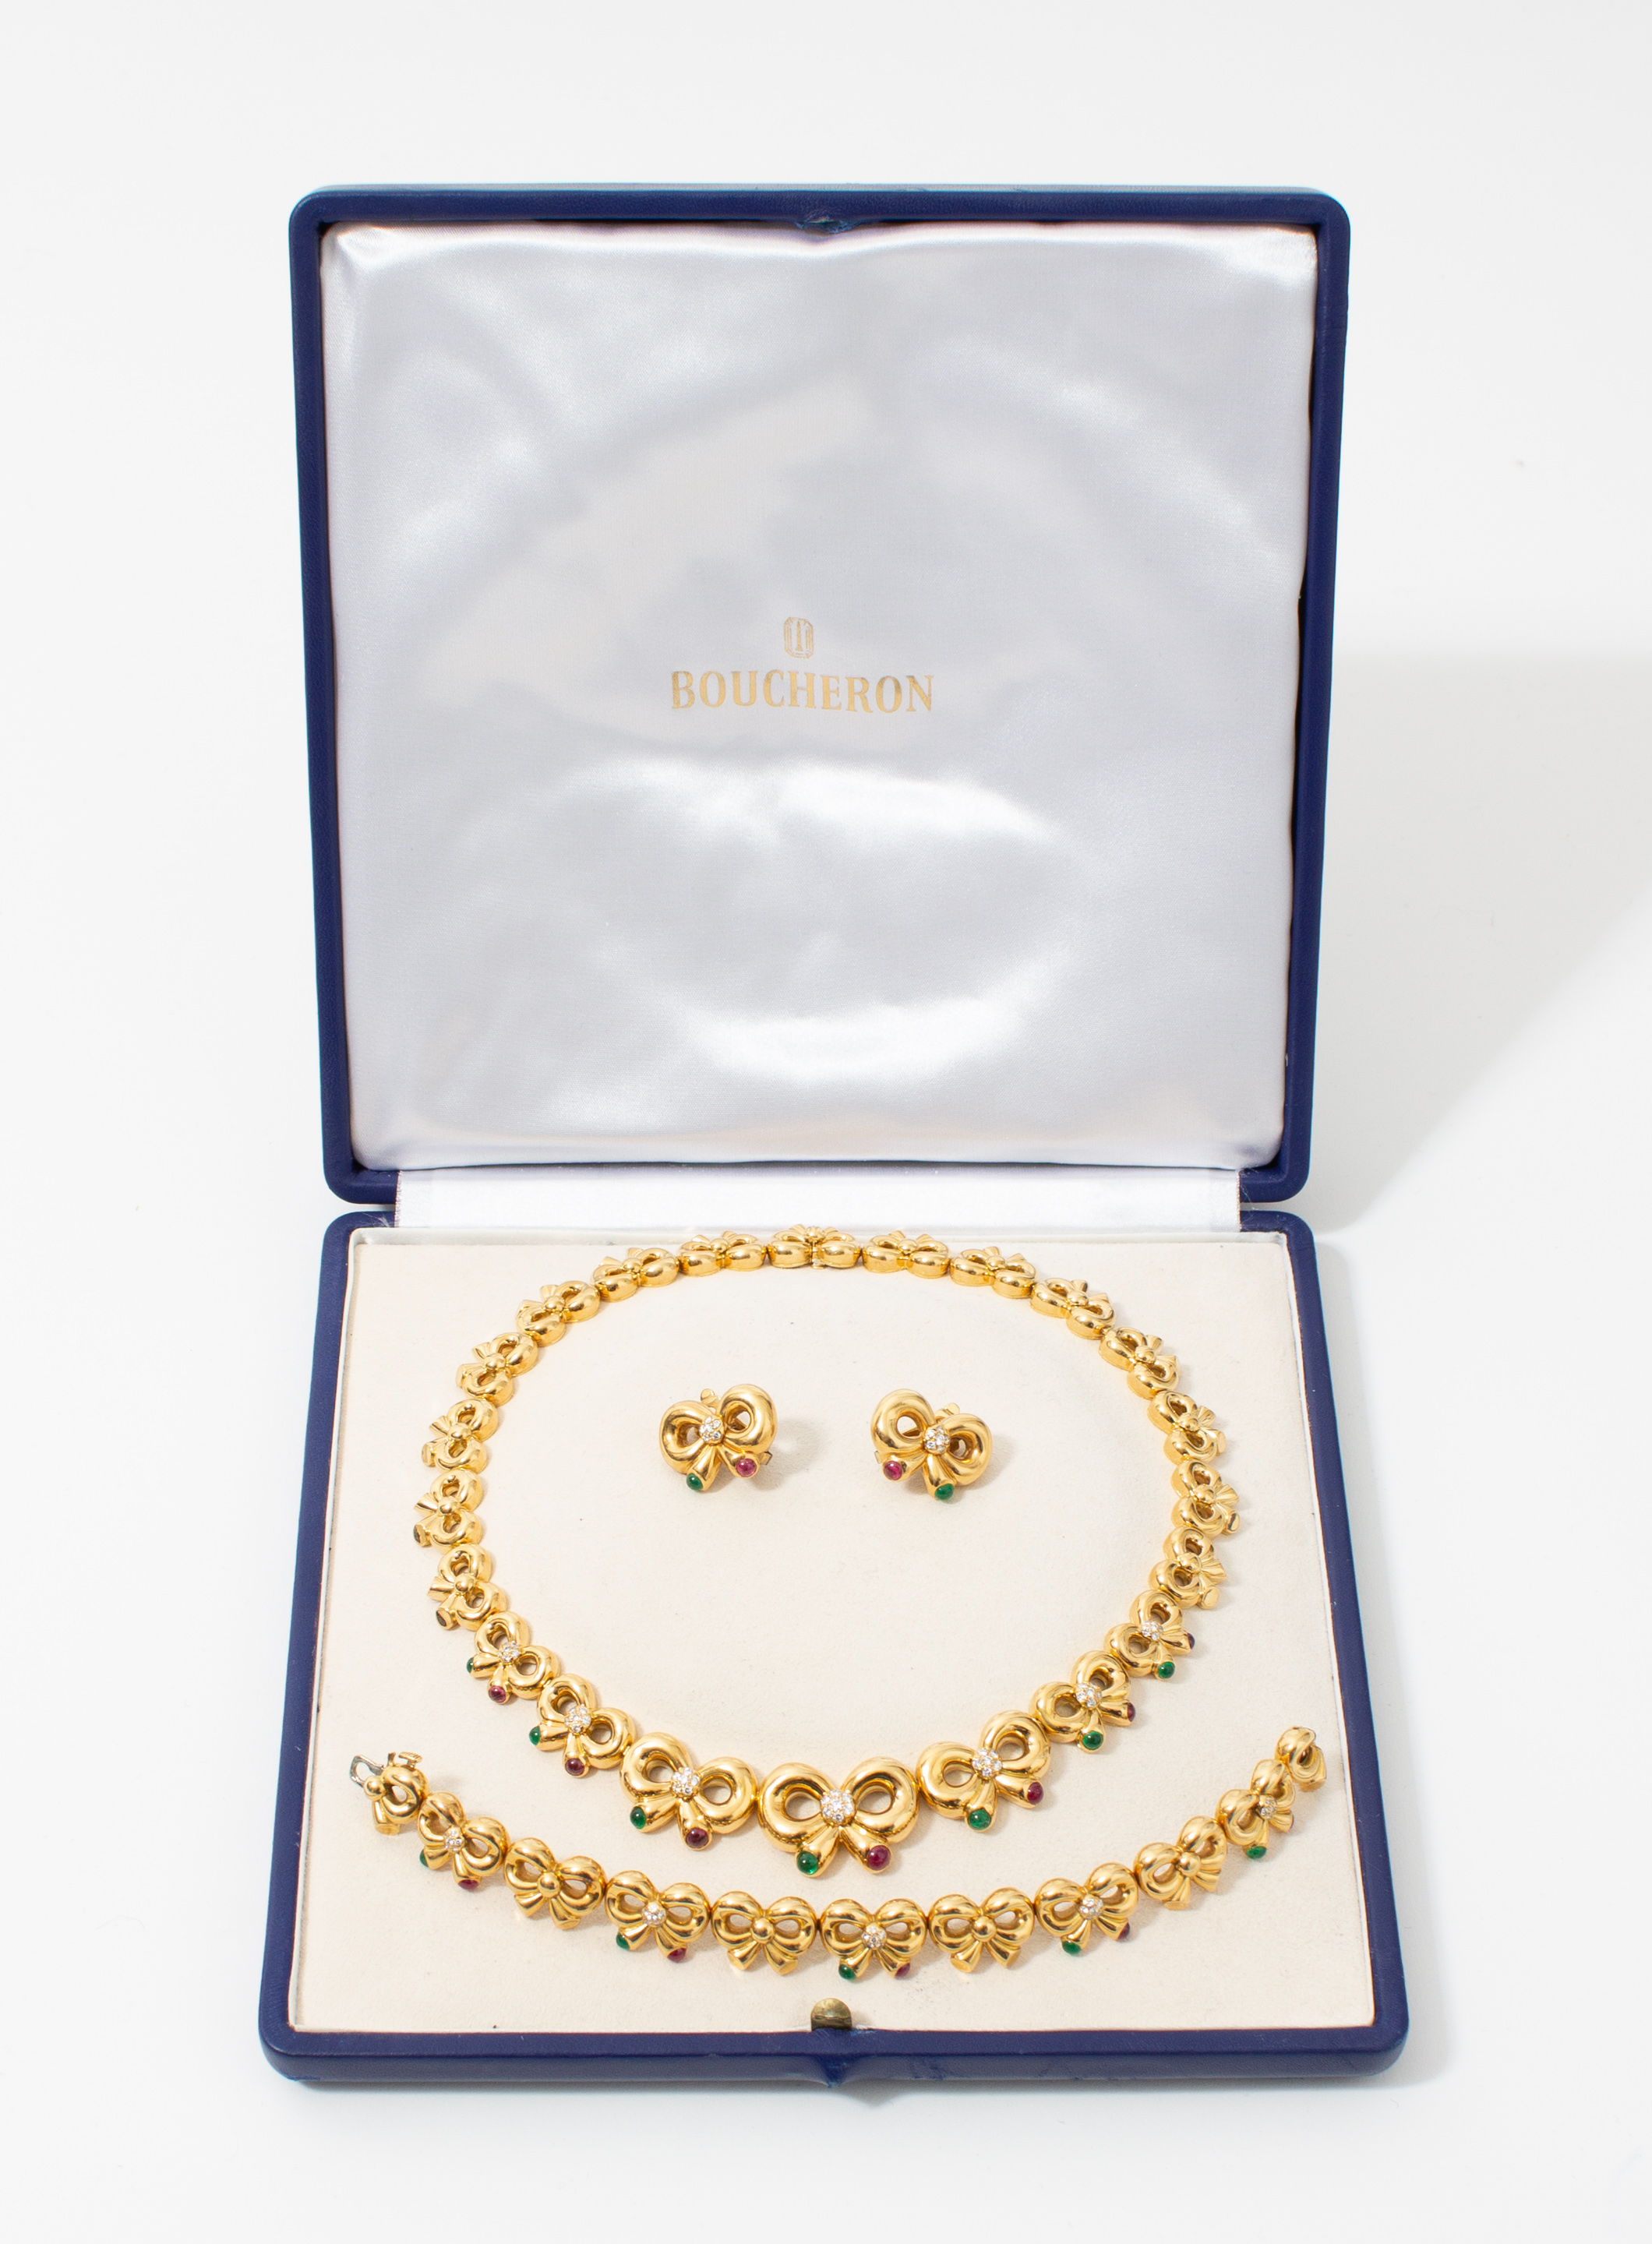 Boucheron PARIS Gold & Precious Stones Necklace Set